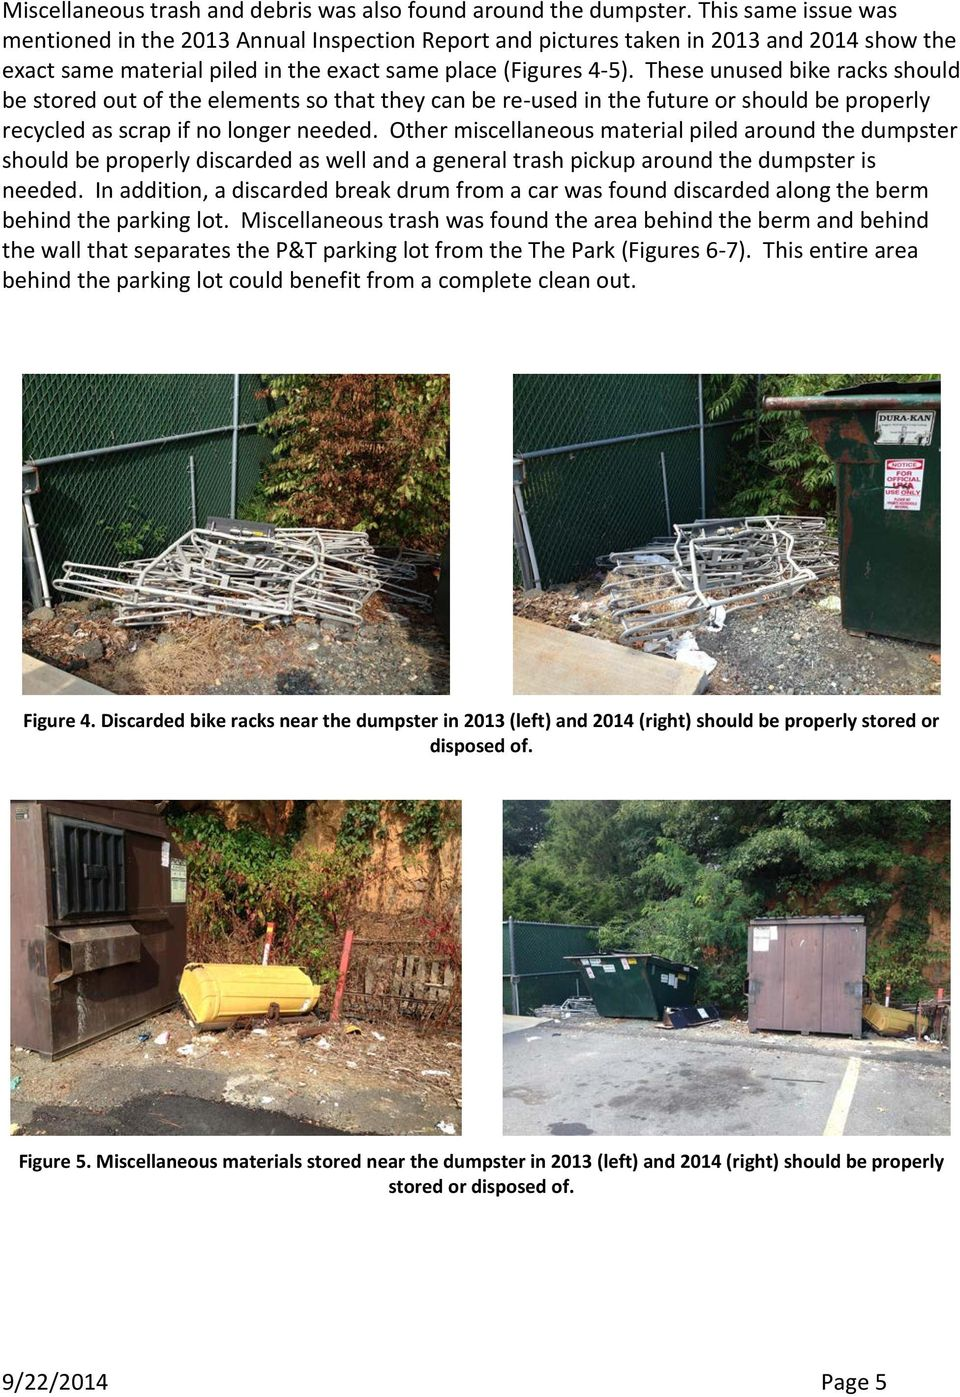 These unused bike racks should be stored out of the elements so that they can be re-used in the future or should be properly recycled as scrap if no longer needed.